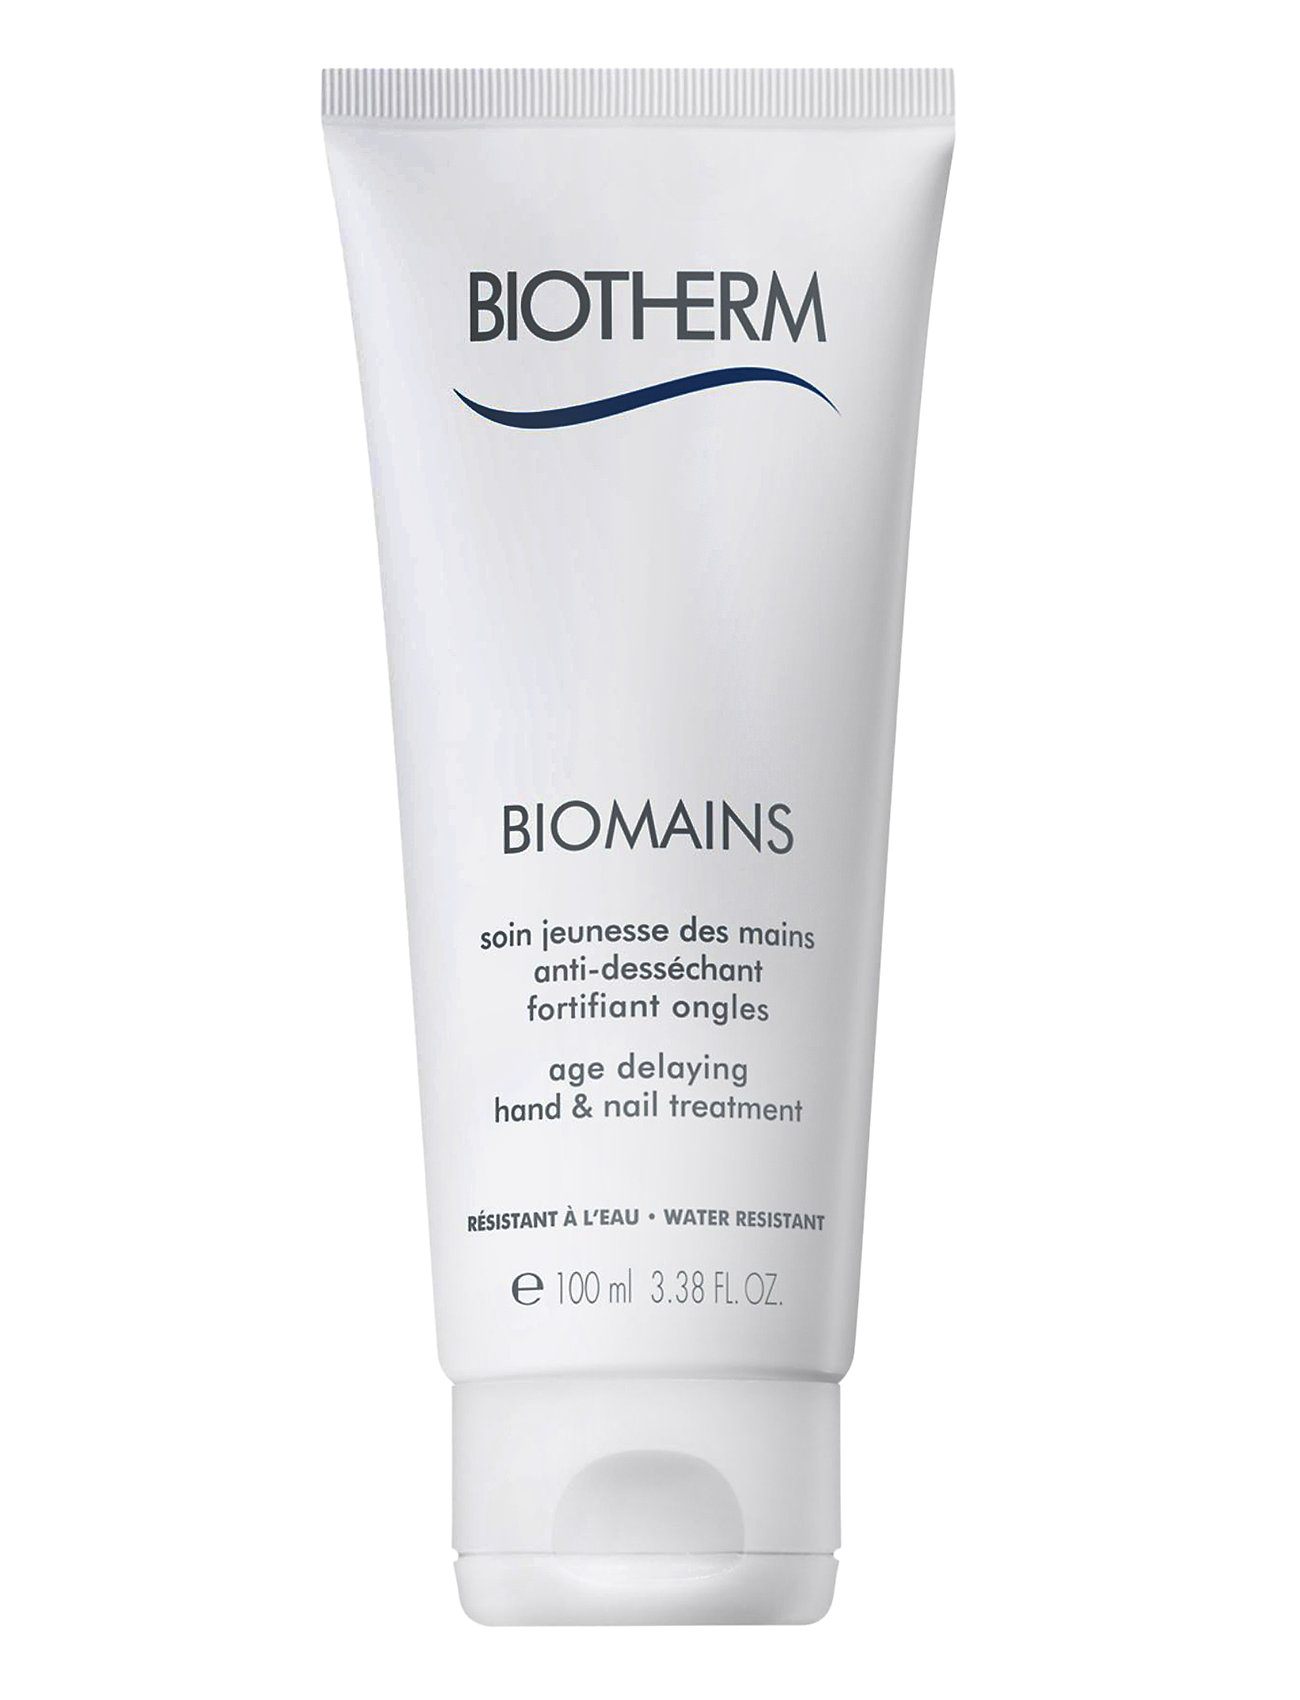 biotherm Biomains - hand lotion 100 ml på boozt.com dk